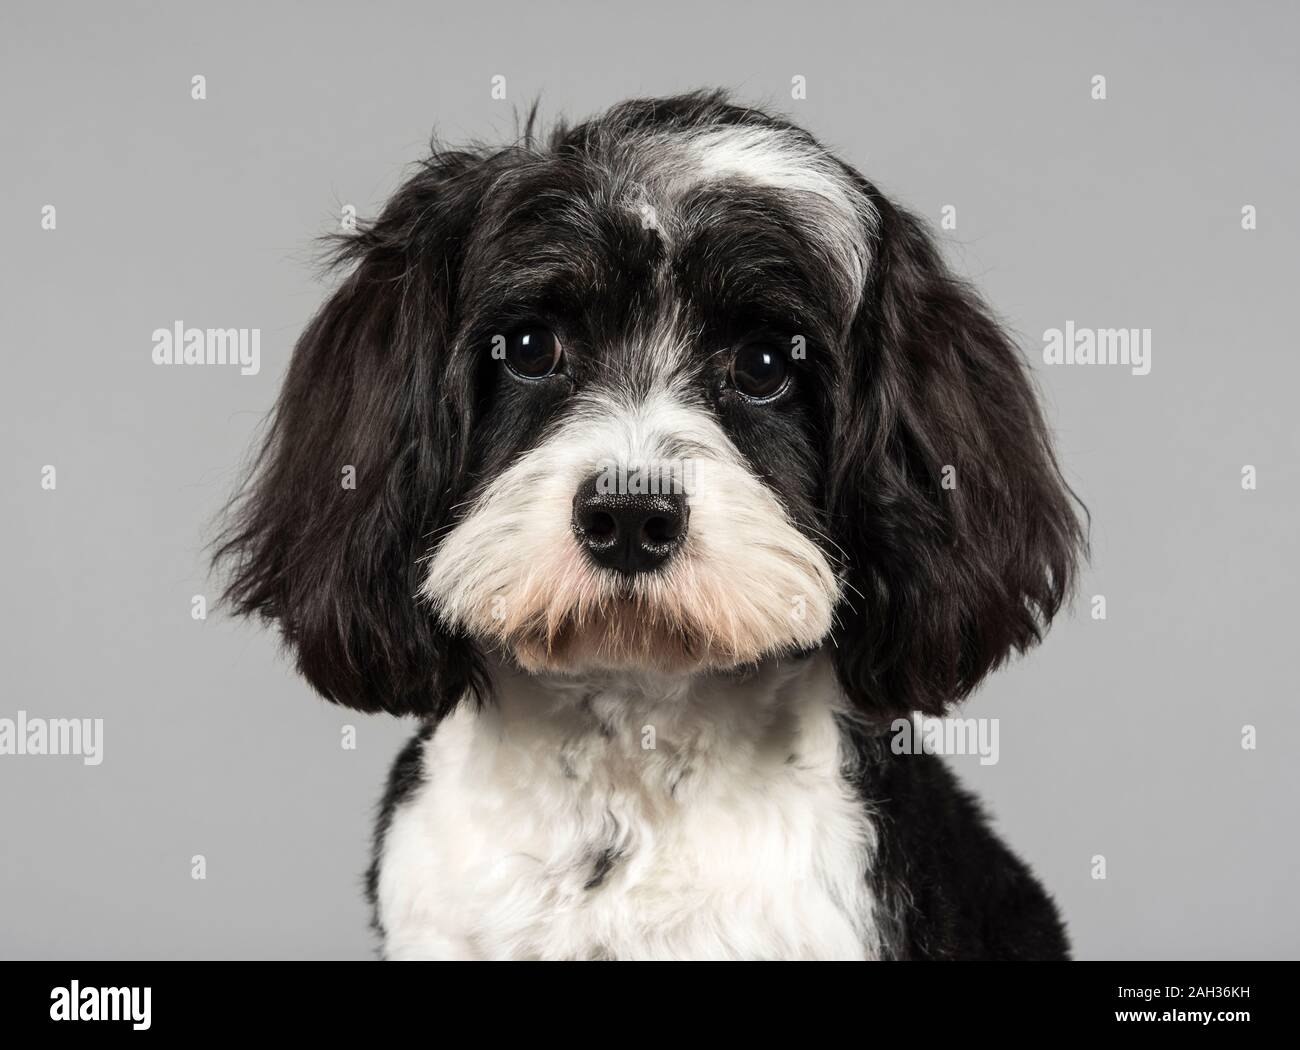 Cavapoo Puppy High Resolution Stock Photography And Images Alamy